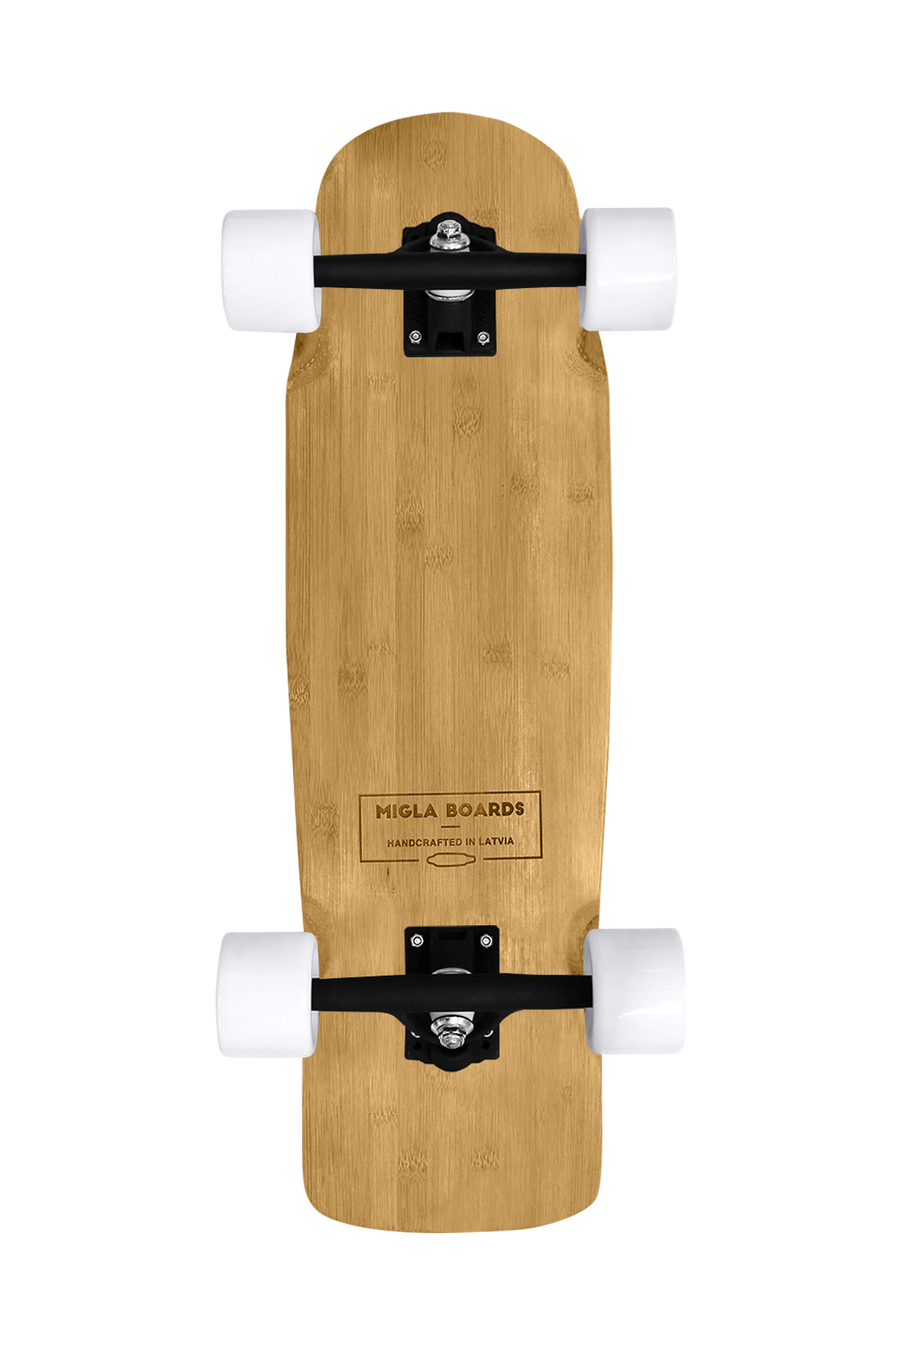 Baby Board (will be available in spring 2021)